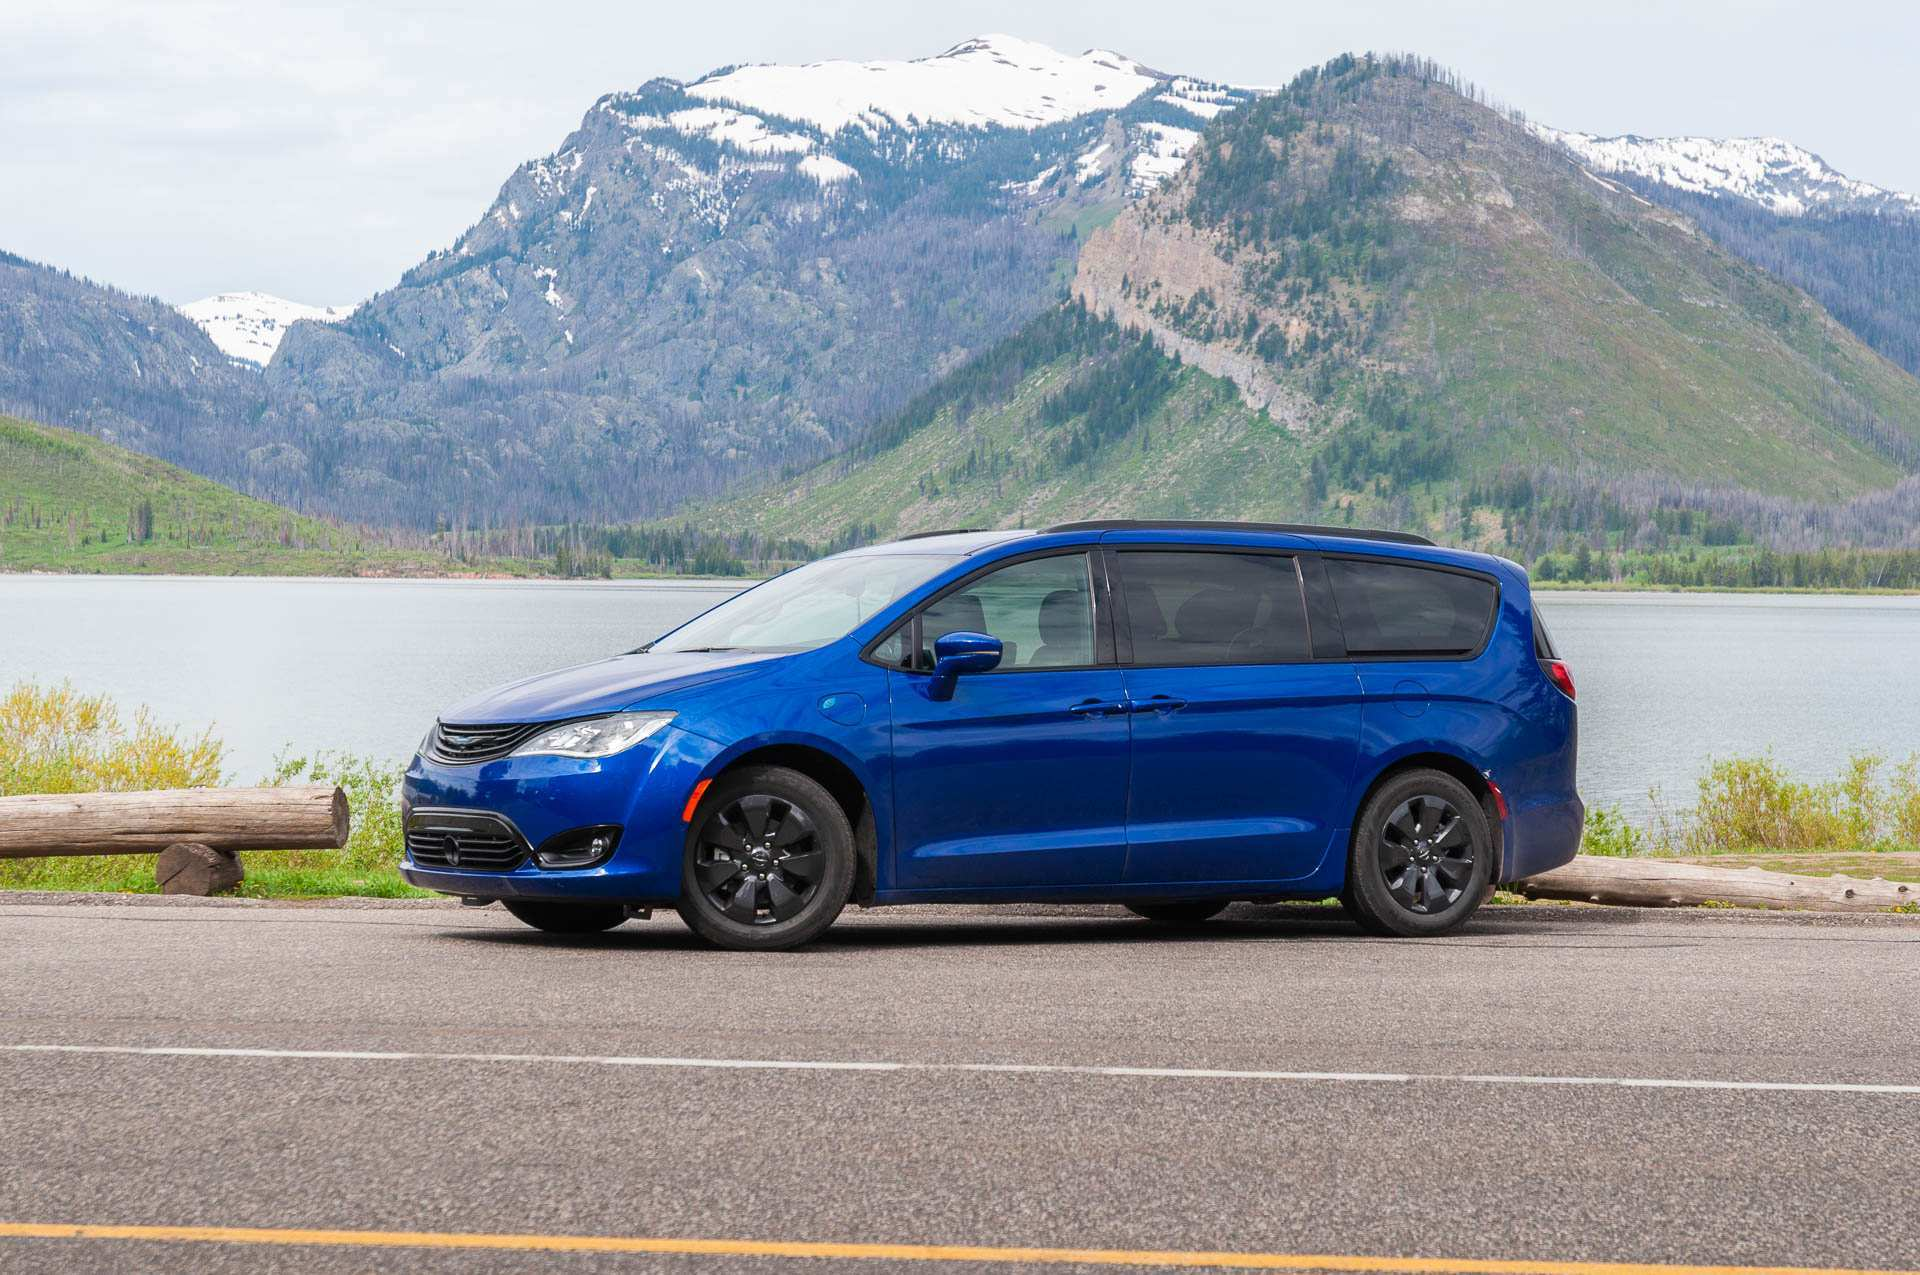 91 All New 2019 Chrysler Pacifica Review Research New